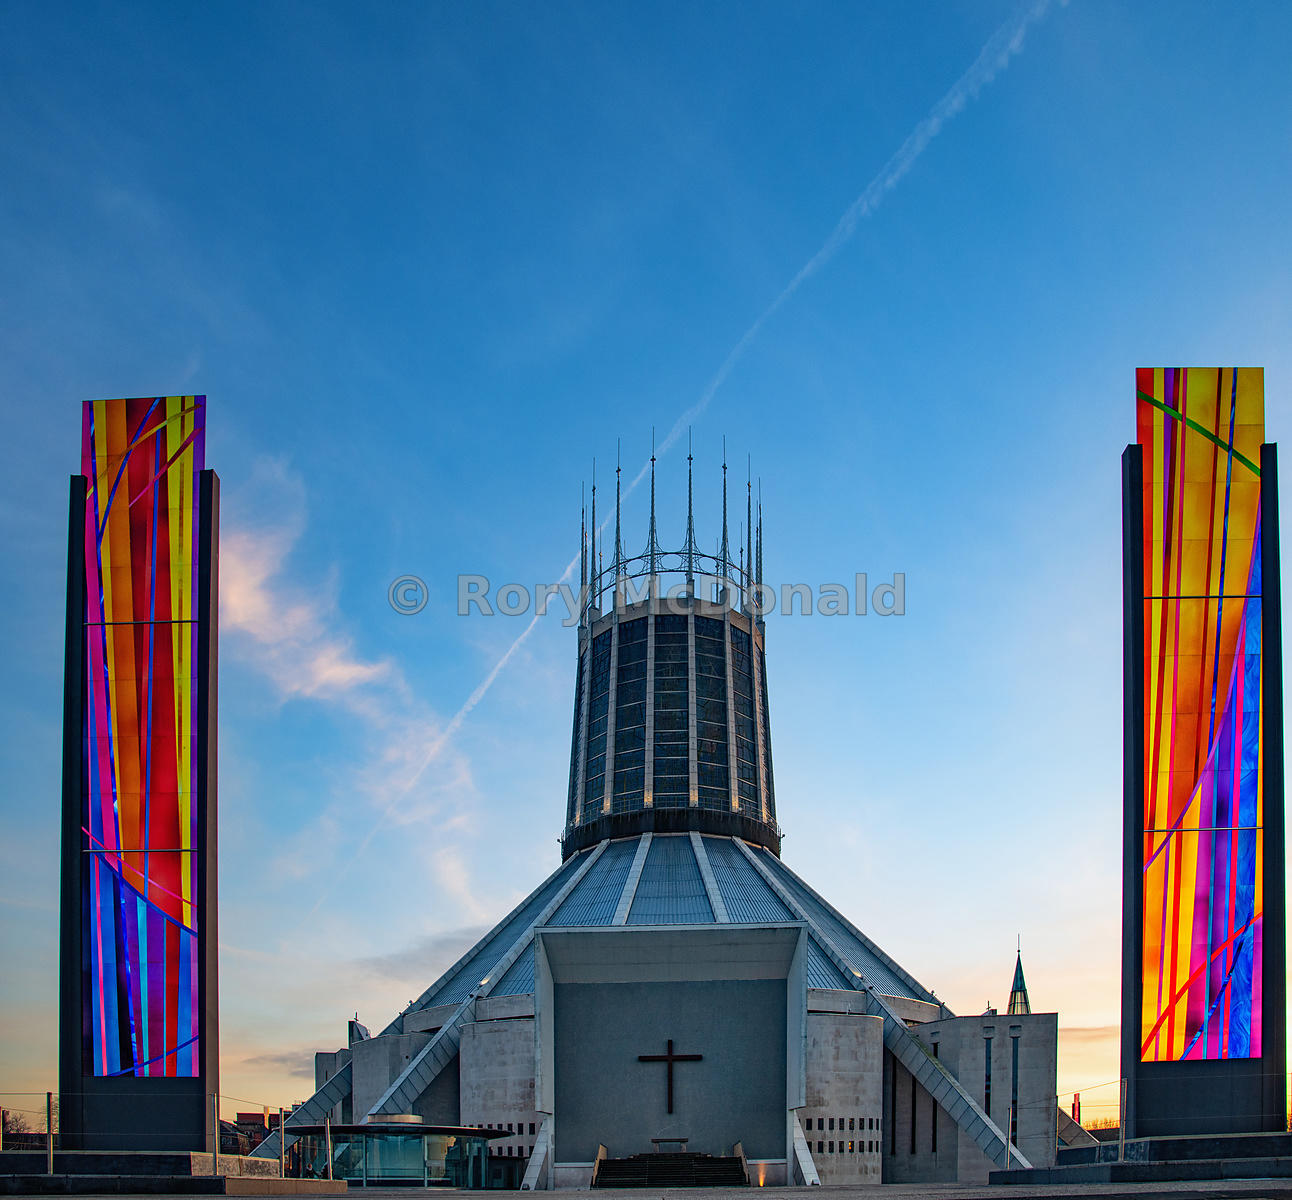 The Catholic Cathedral in Liverpool